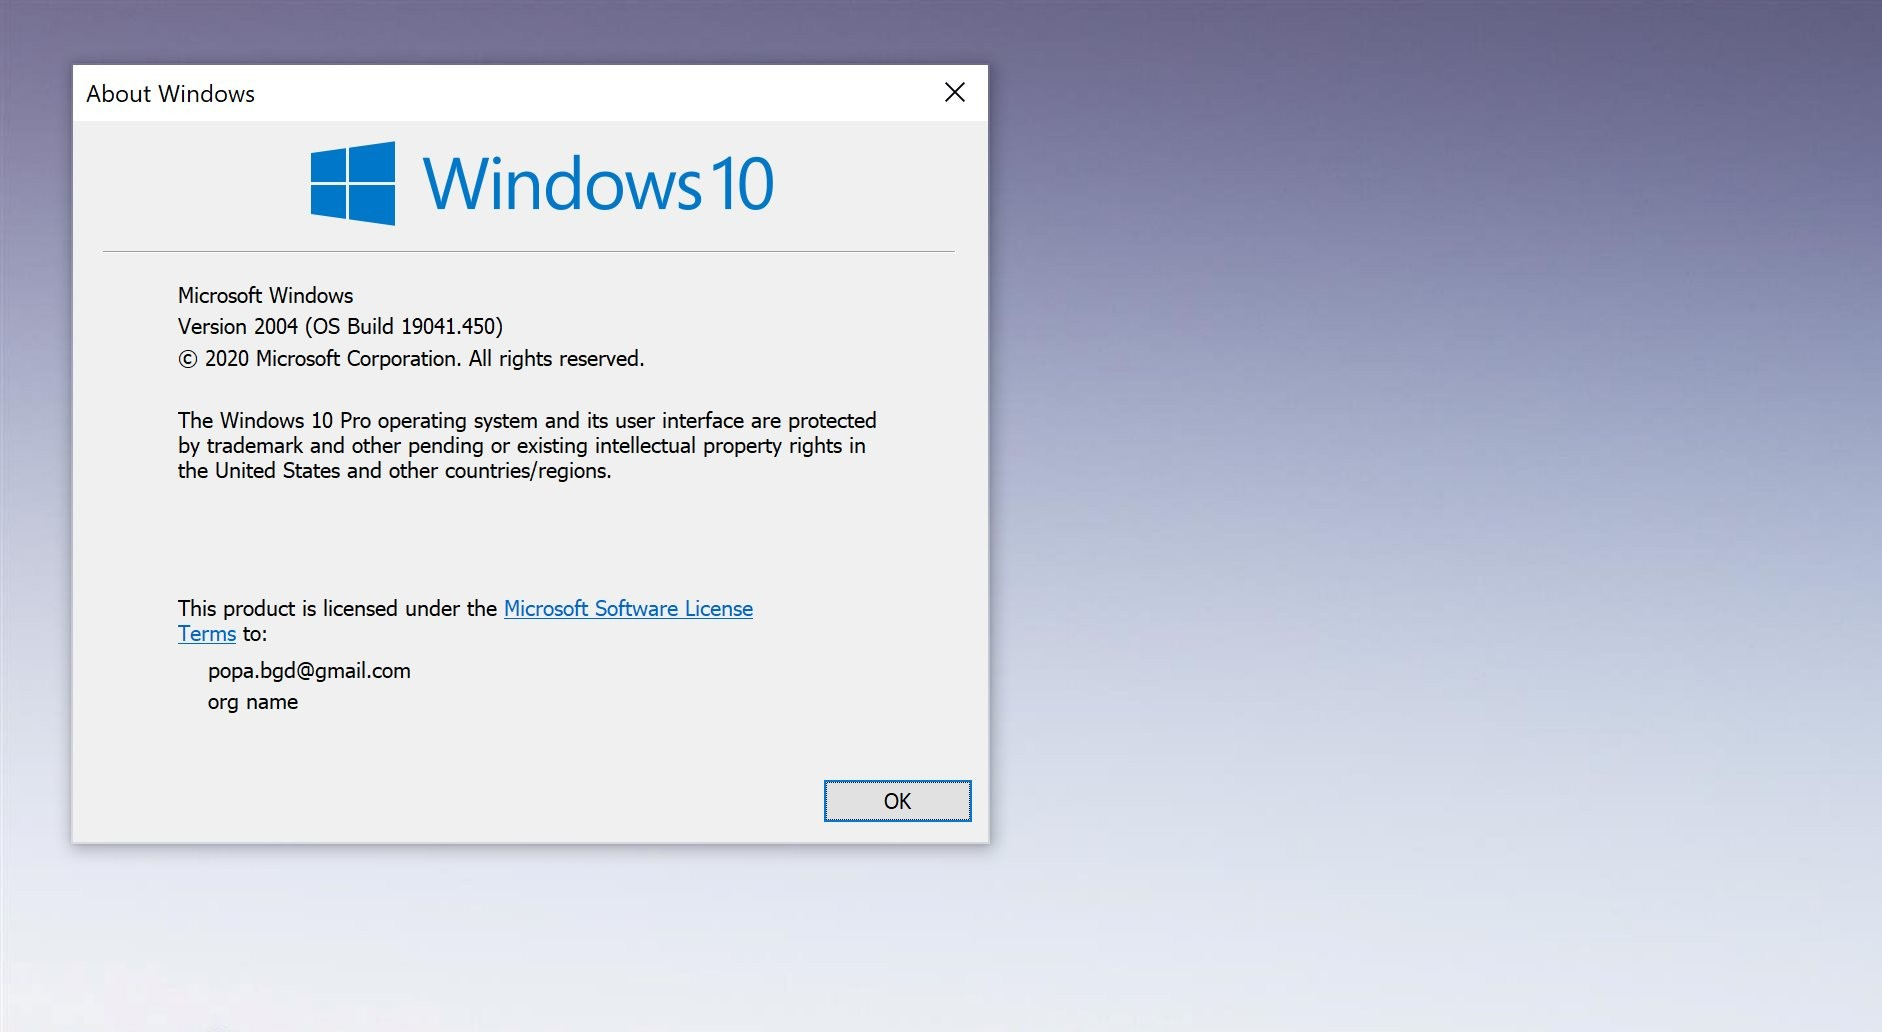 Latest Windows 10 update causing installation failure for some users